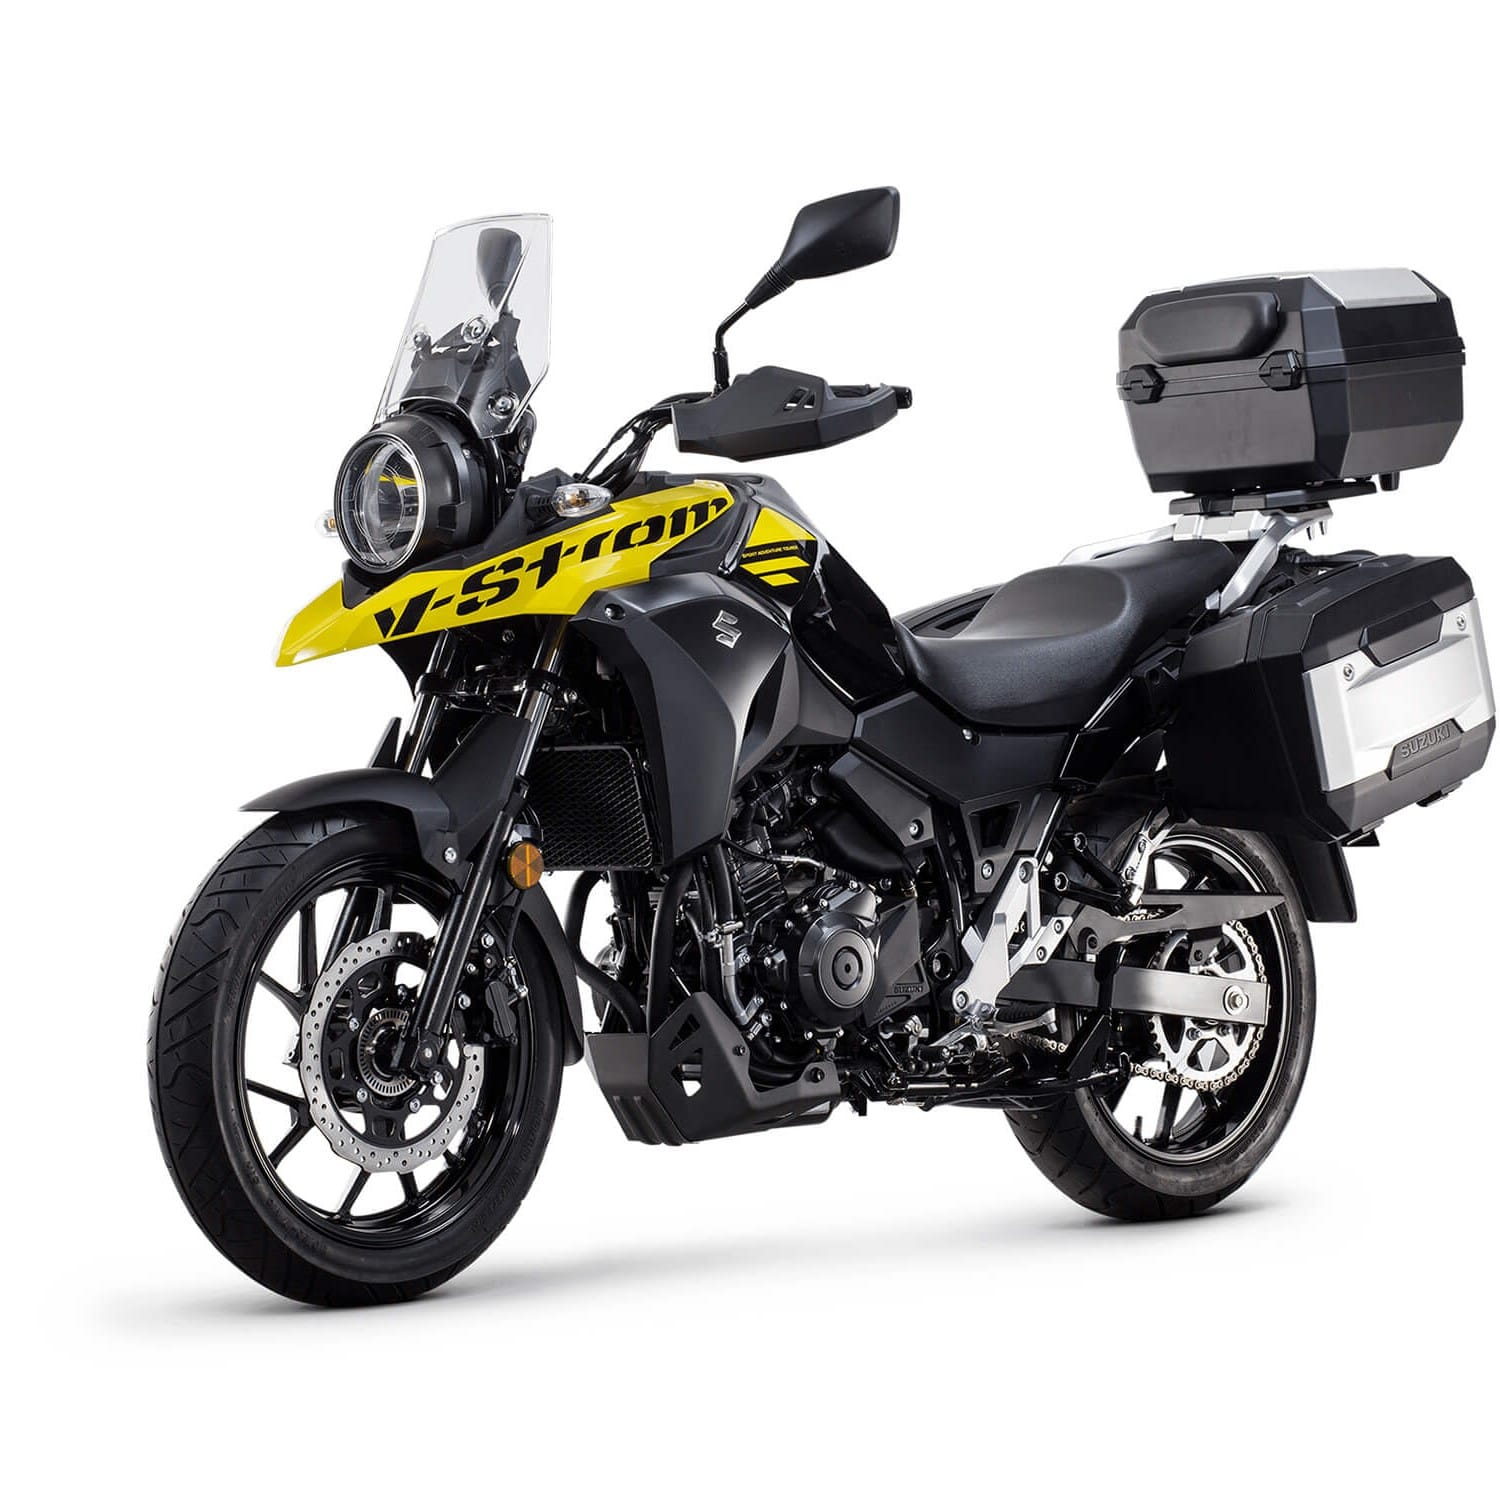 suzuki v-strom 250 touring bike - chelsea motorcycles group